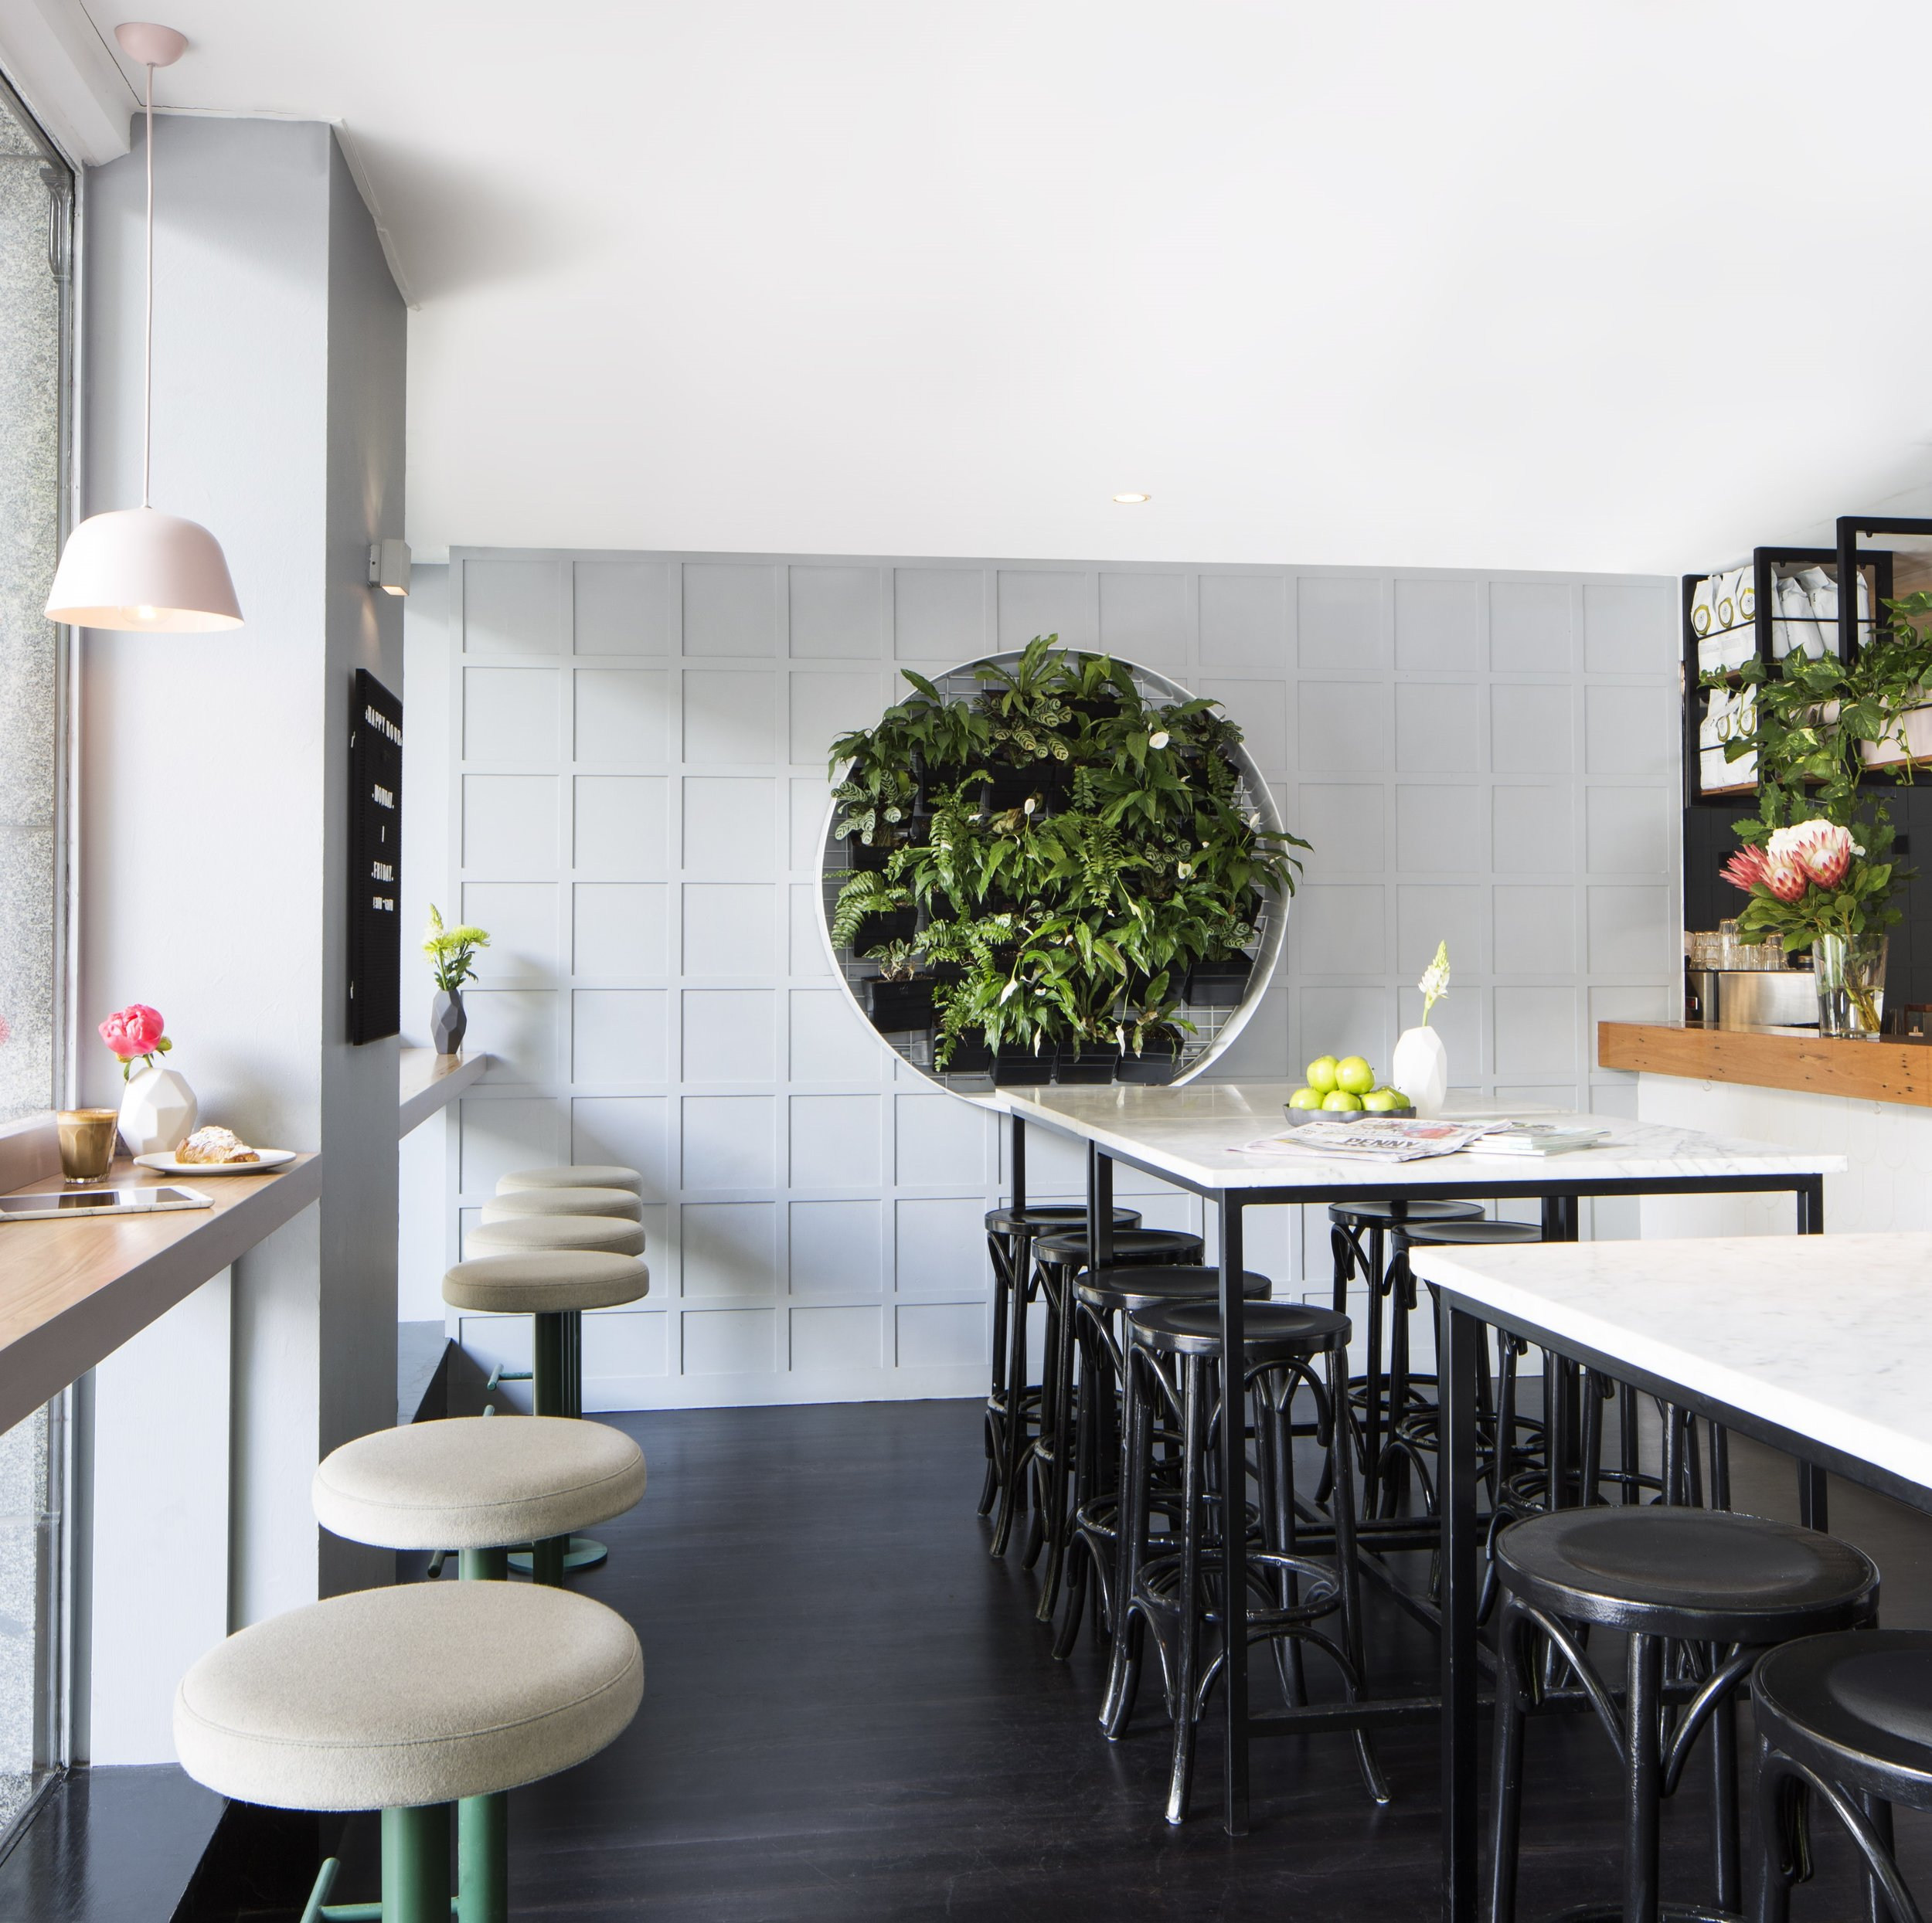 Lello Pasta Bar , on Melbourne's iconic Flinders Lane, has undergone a recent refresh of its cafe interior (design by  Maitland Street Interiors ), setting it up to thrive in the competitive cafe industry. Interior Stylist:  Sarah Elshaug ,  Maitland Street Interiors . Photographer :  Stephanie Rooney